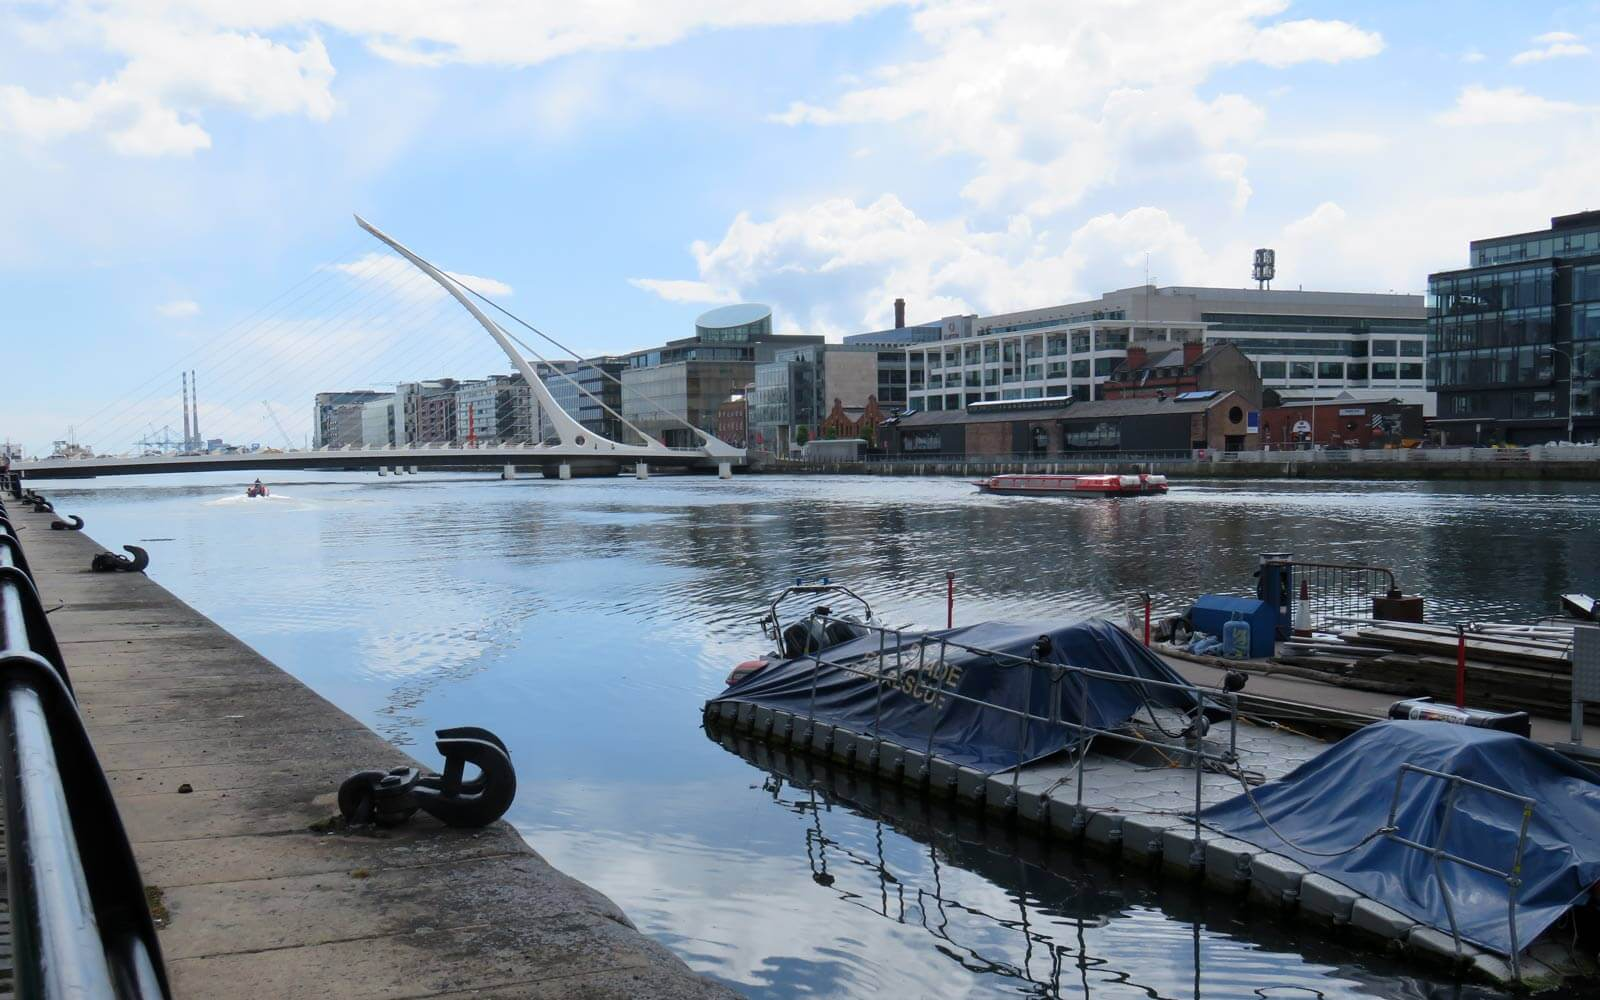 River Liffey mit Samuel Beckett Bridge in Dublin